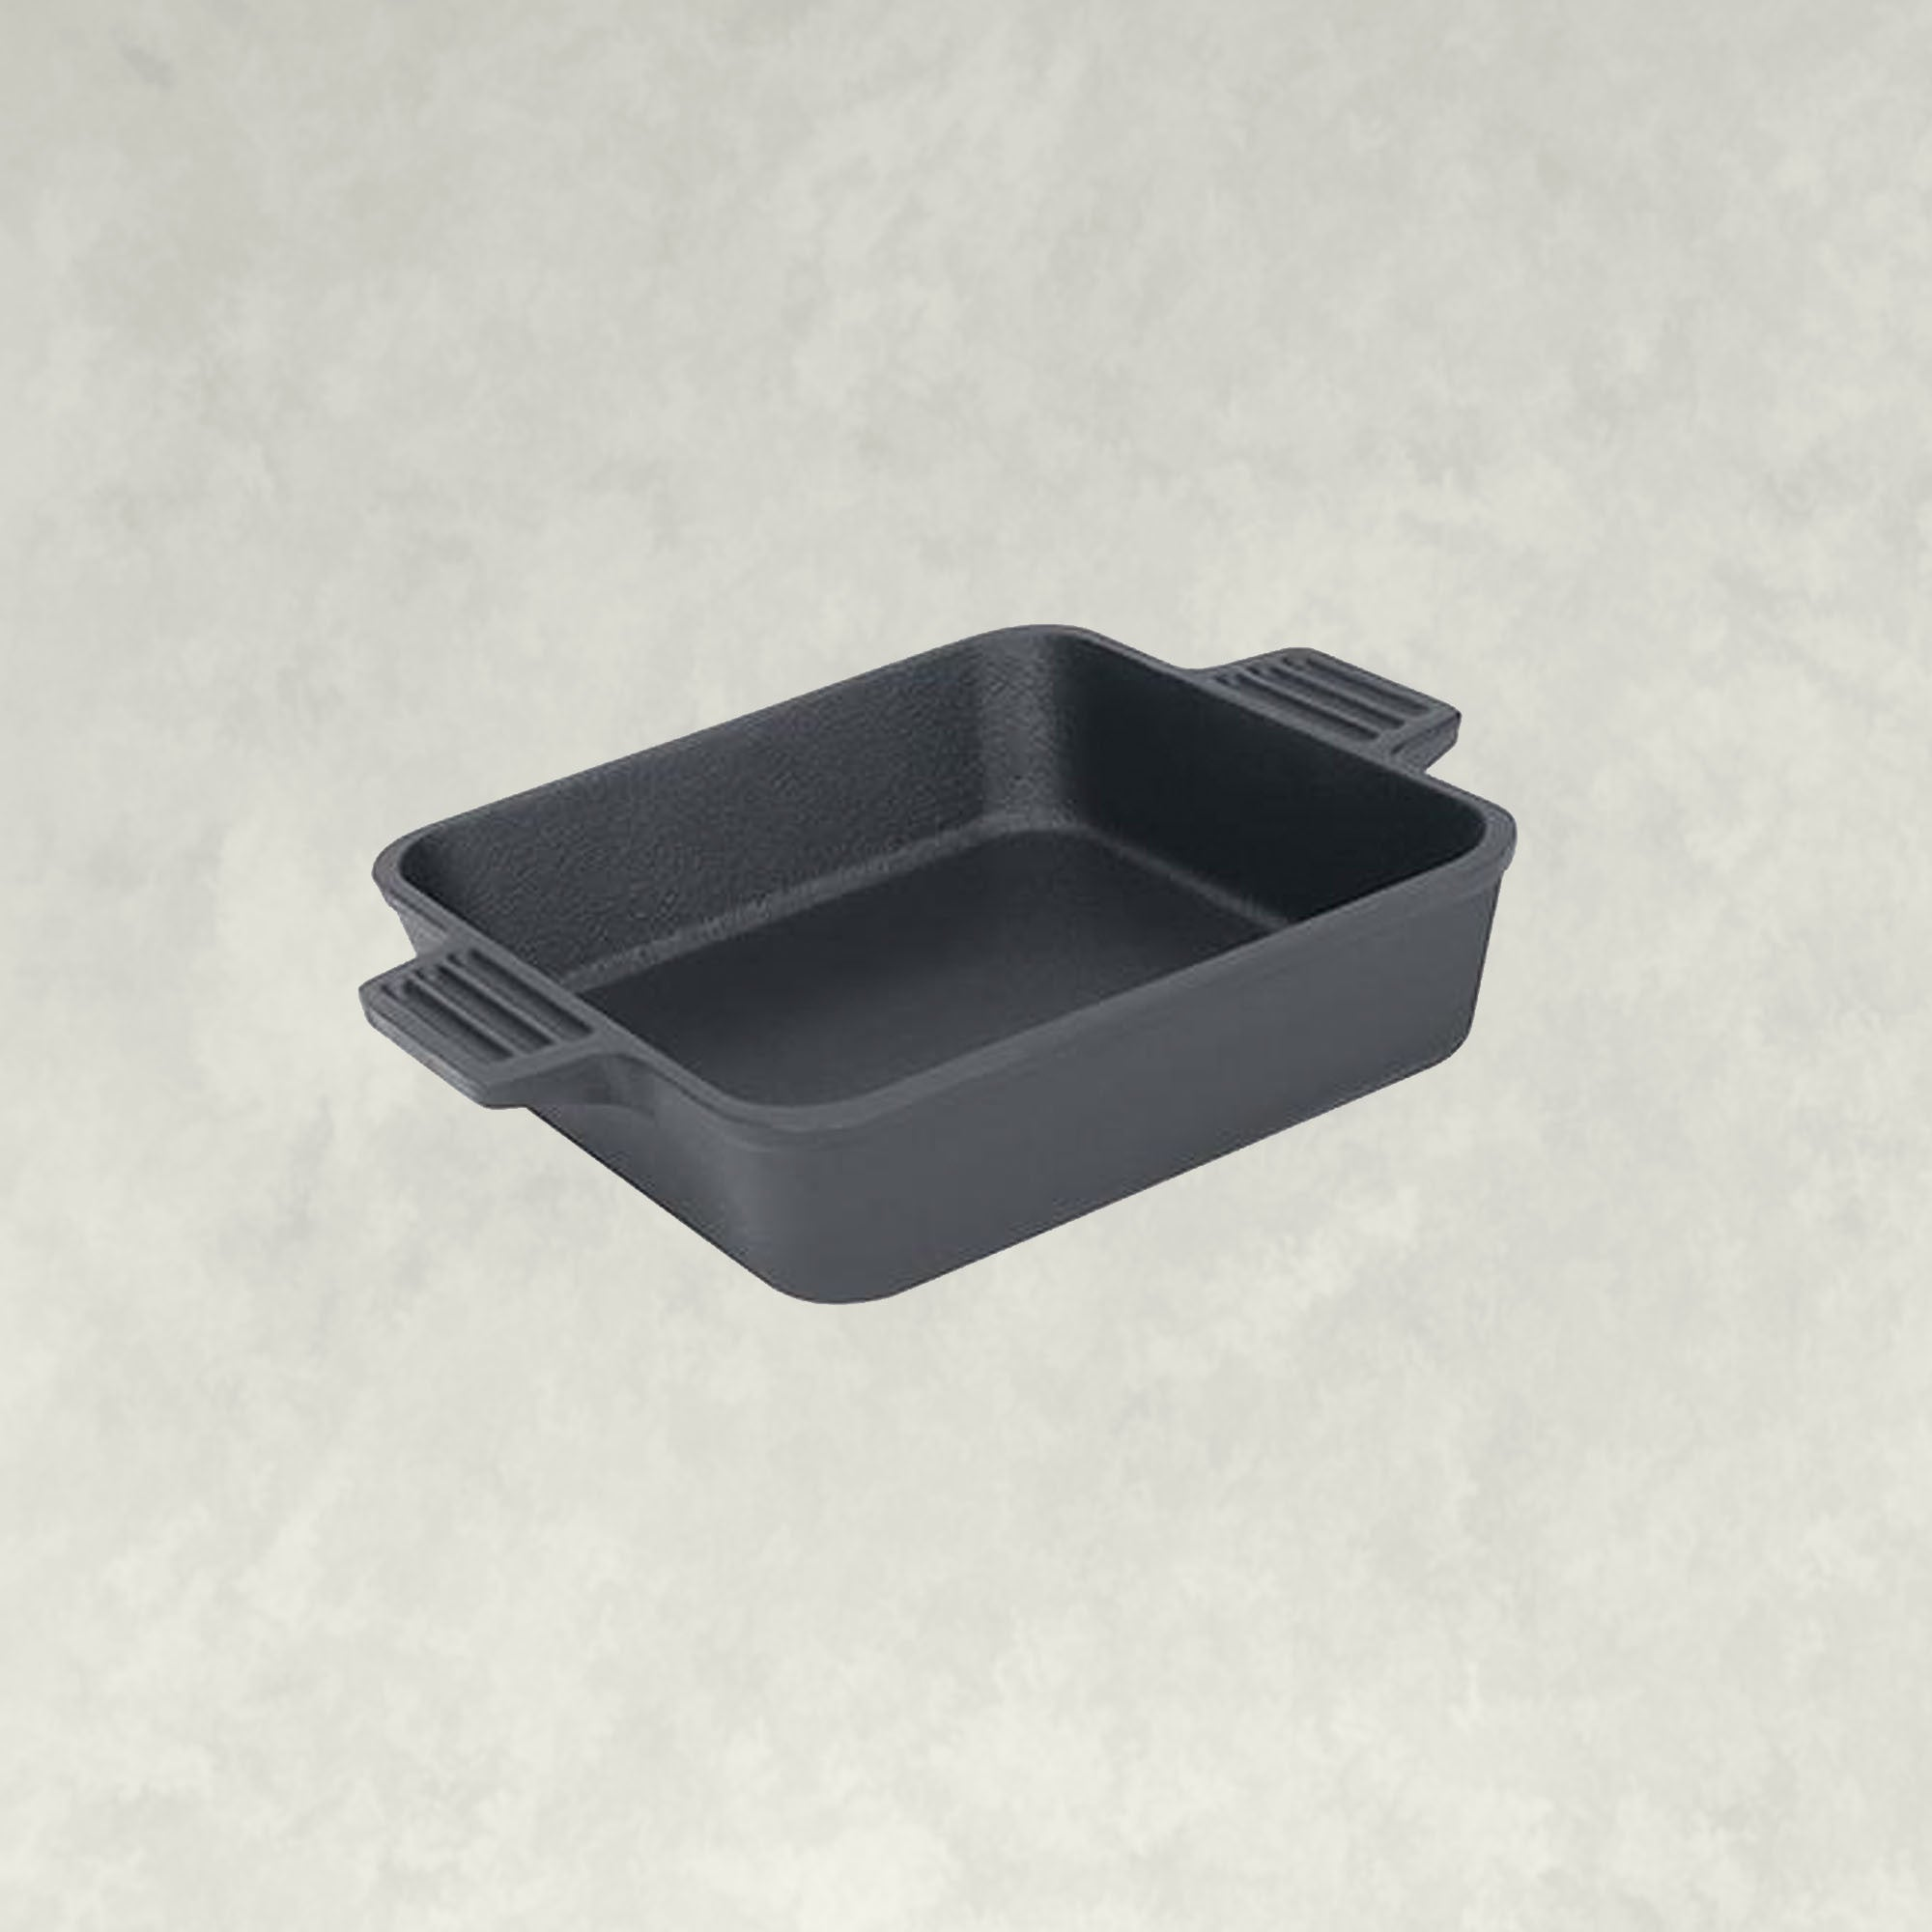 8-in Cast Iron Square Cake Pan